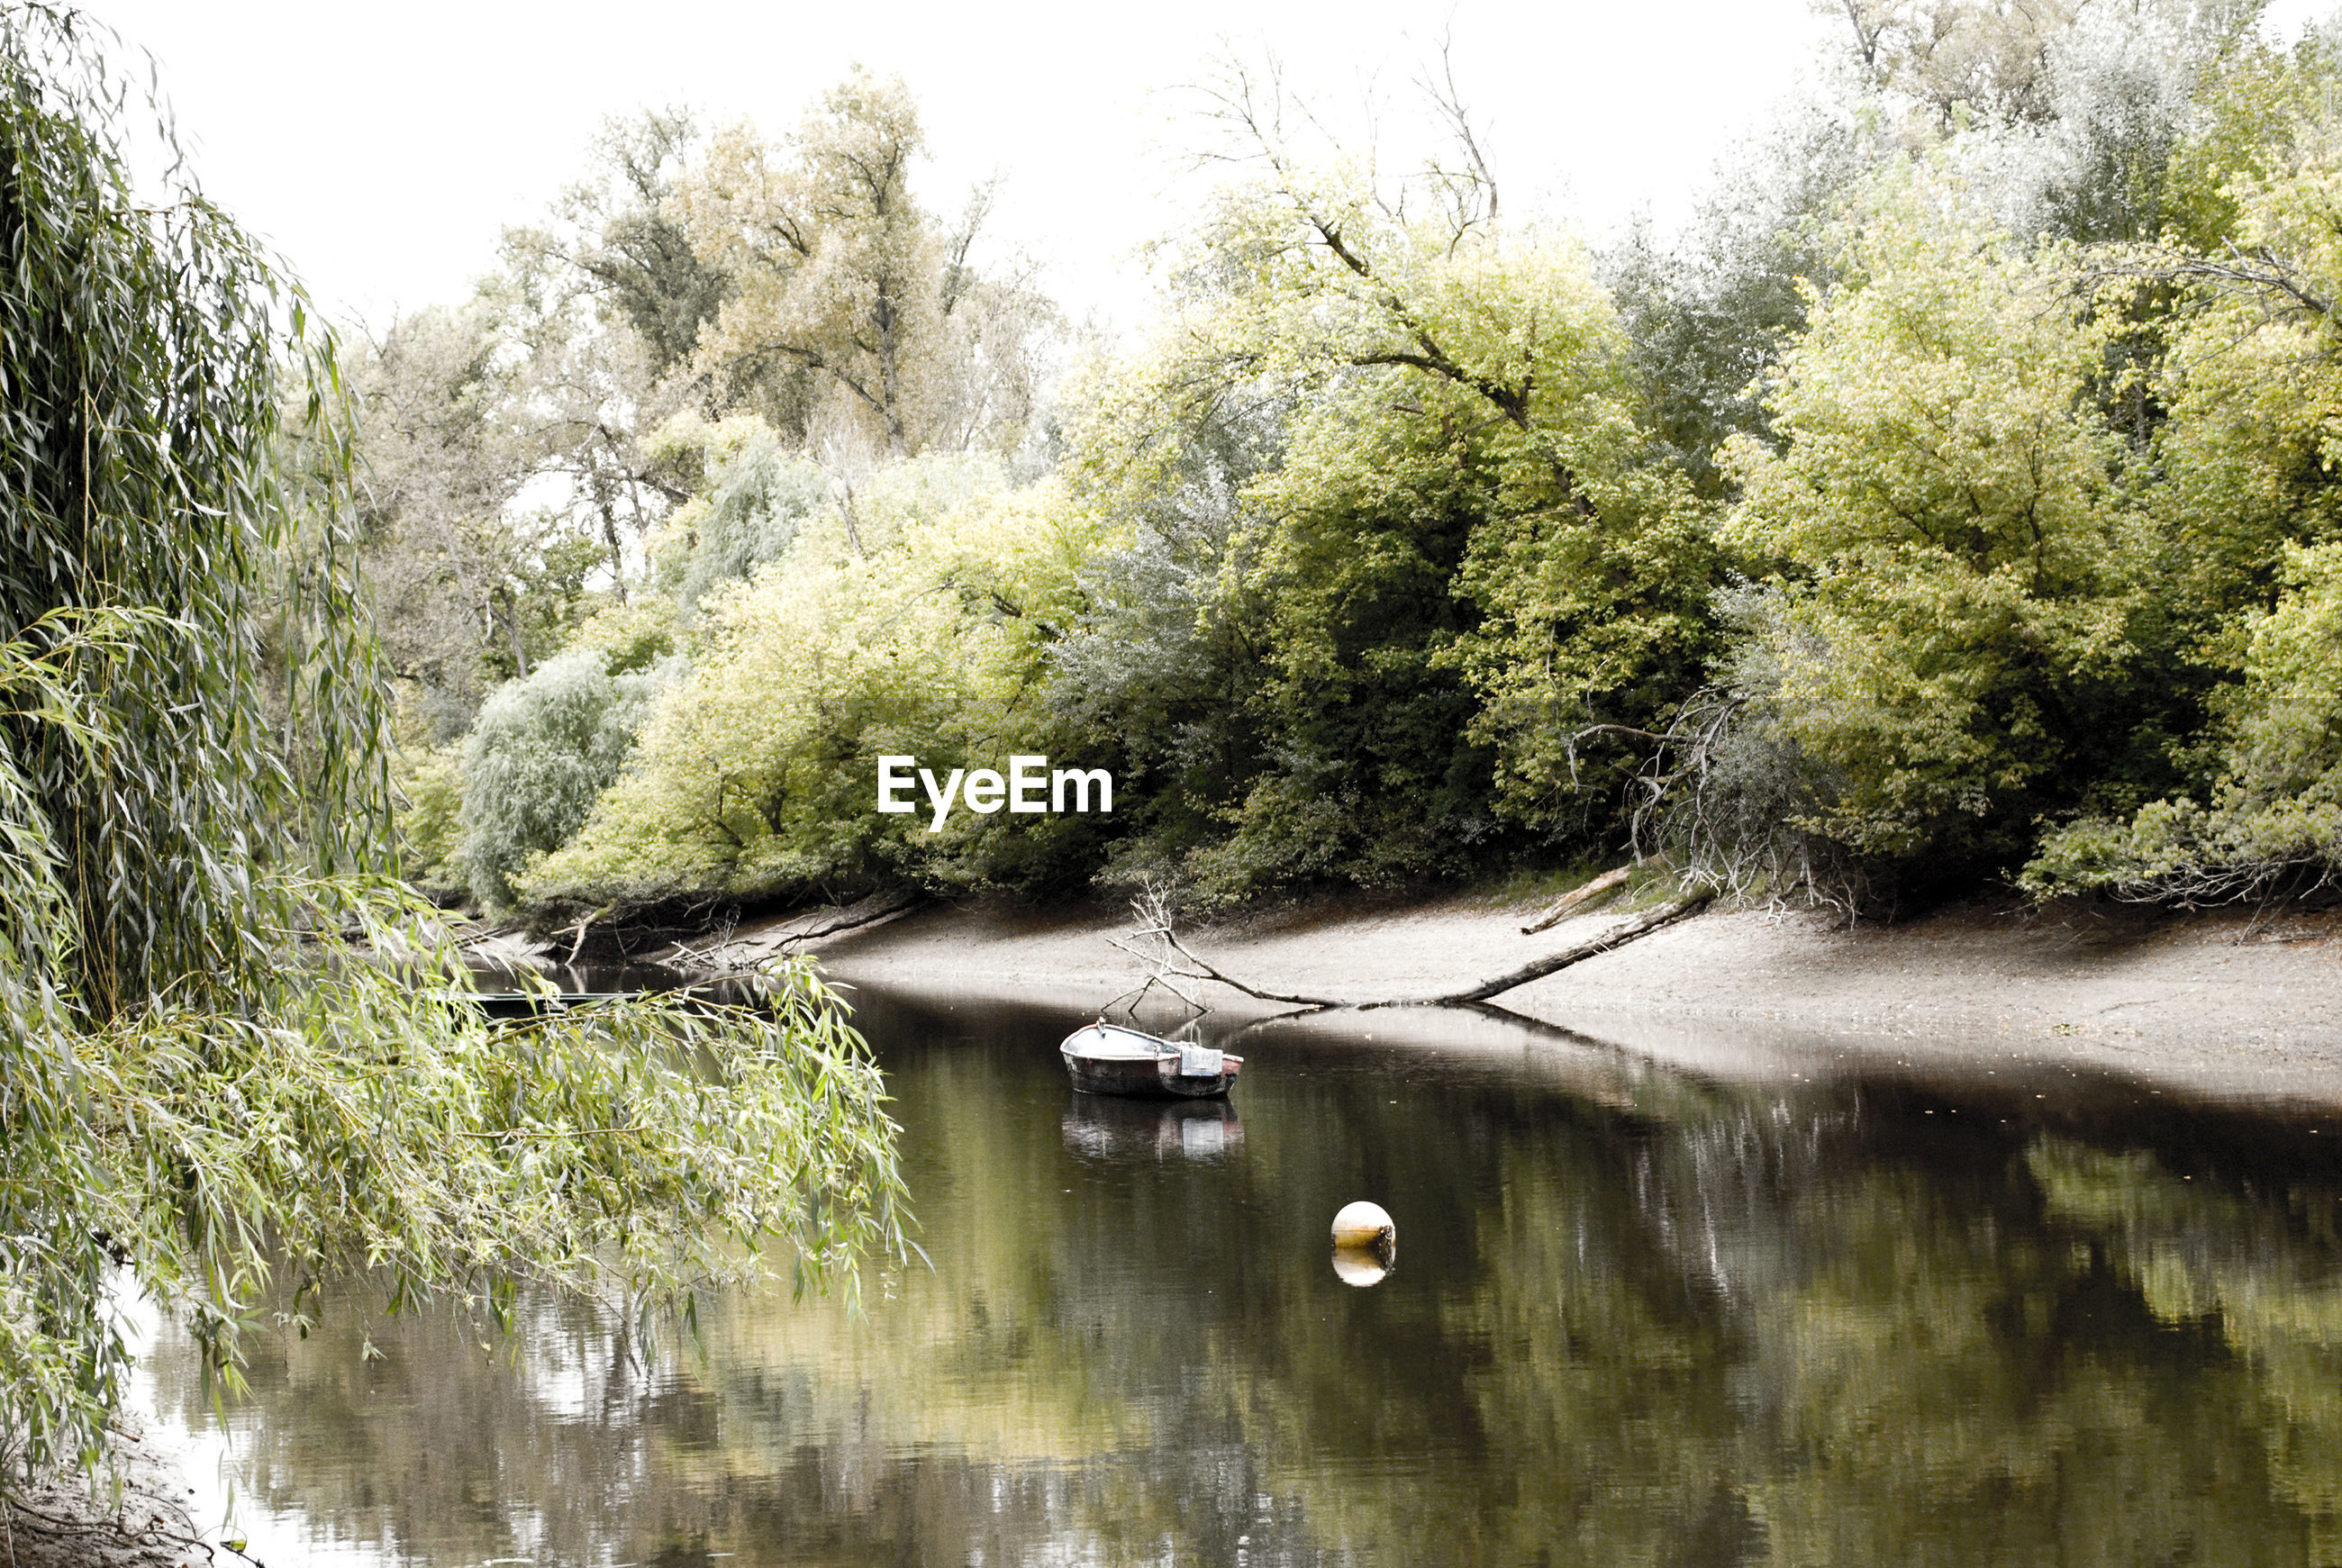 Boat in river surrounded by trees